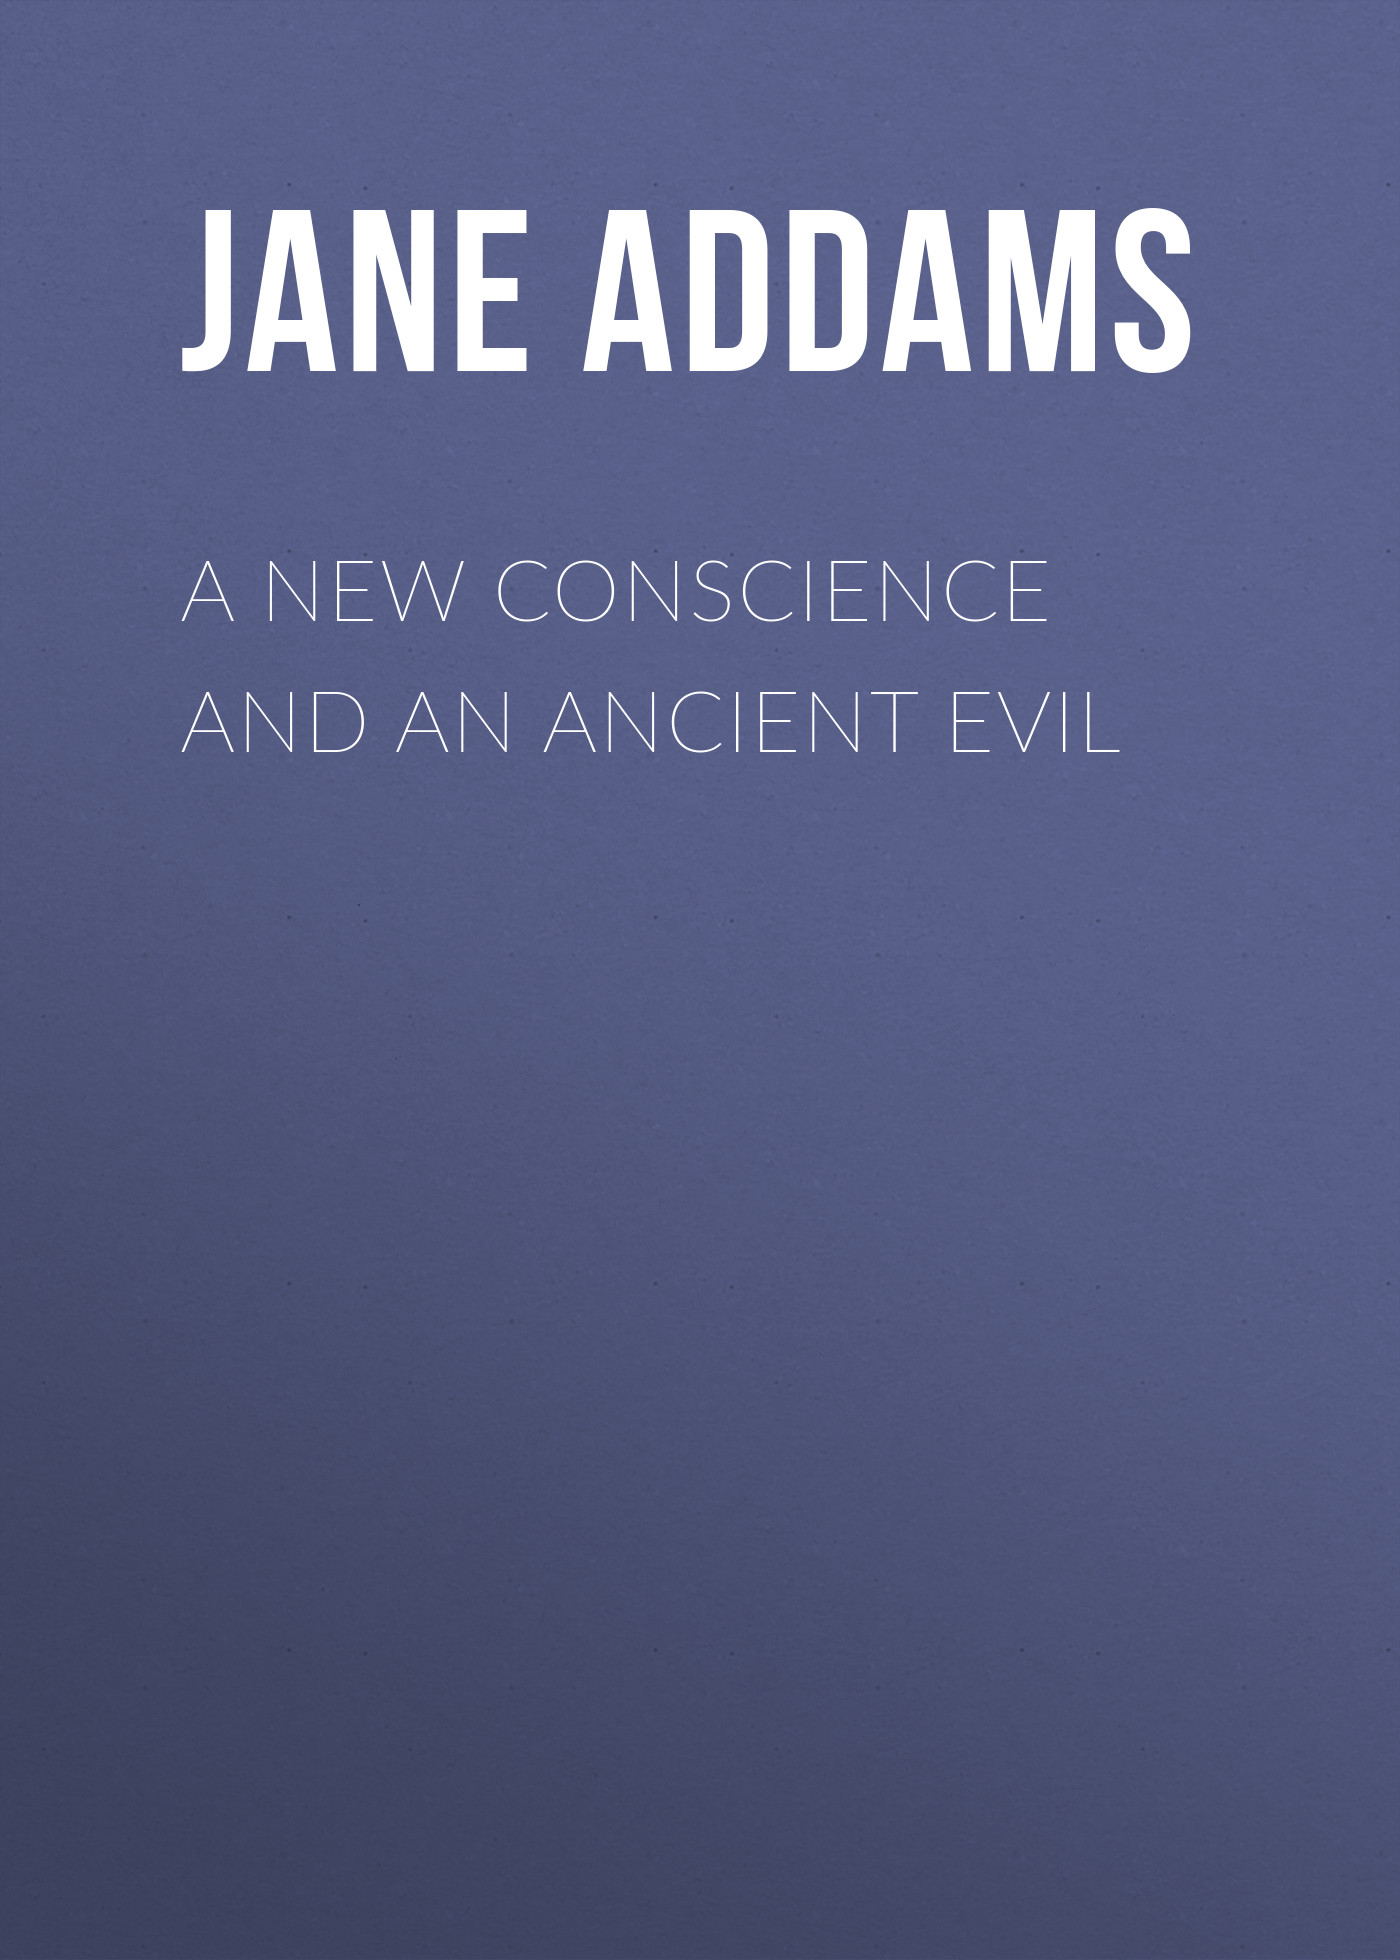 Jane Addams A New Conscience and an Ancient Evil greene society freedom and conscience paper